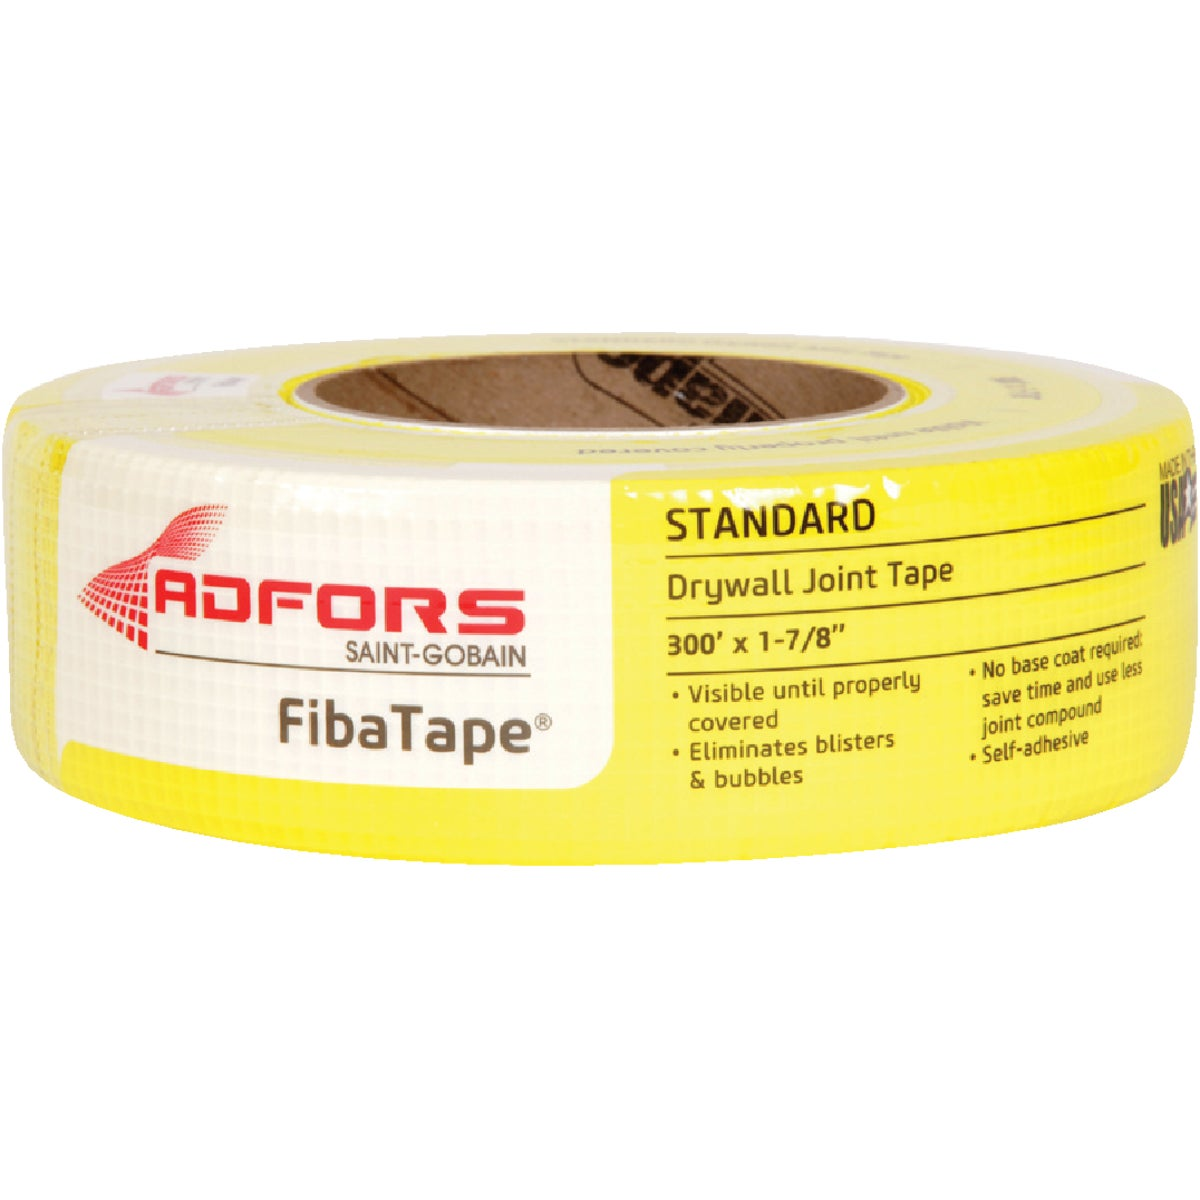 300'YEL FBGLS JOINT TAPE - FDW6590-U by Saint Gobain